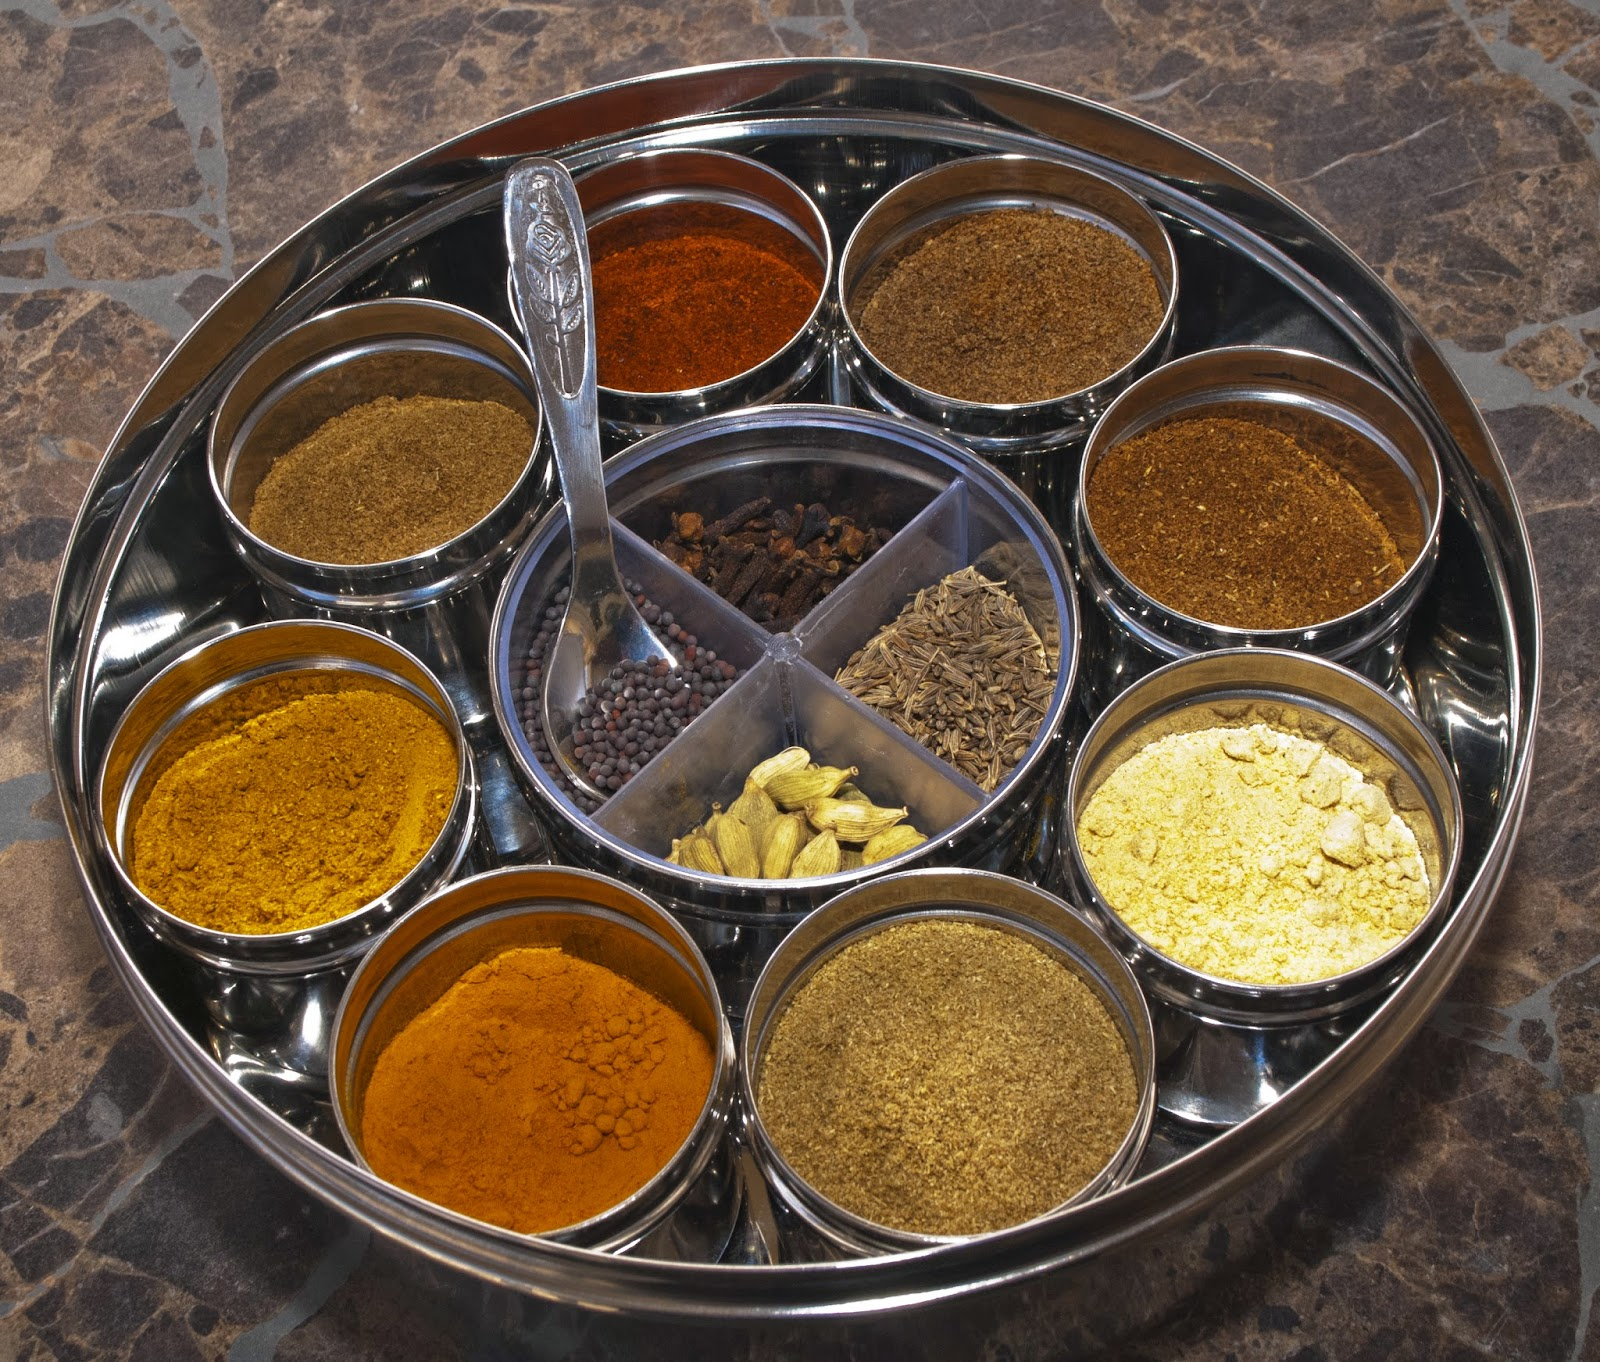 Myeyeq studio 5 indian food 3 ways for 4 spice indian cuisine